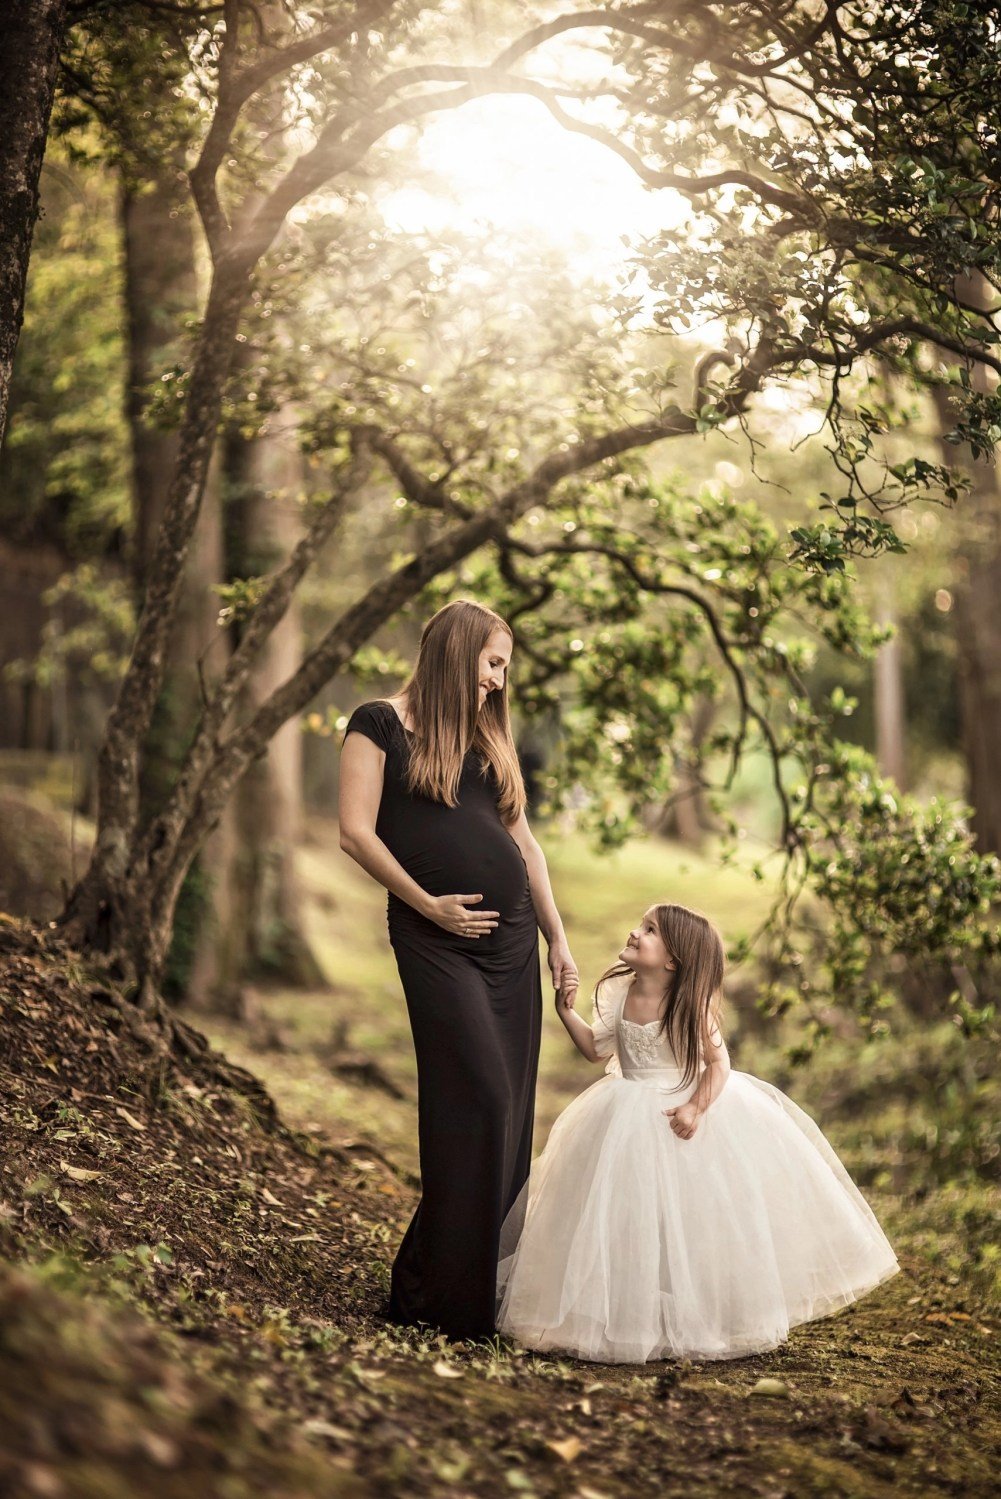 maternity photograph of mother and young daughter in nature